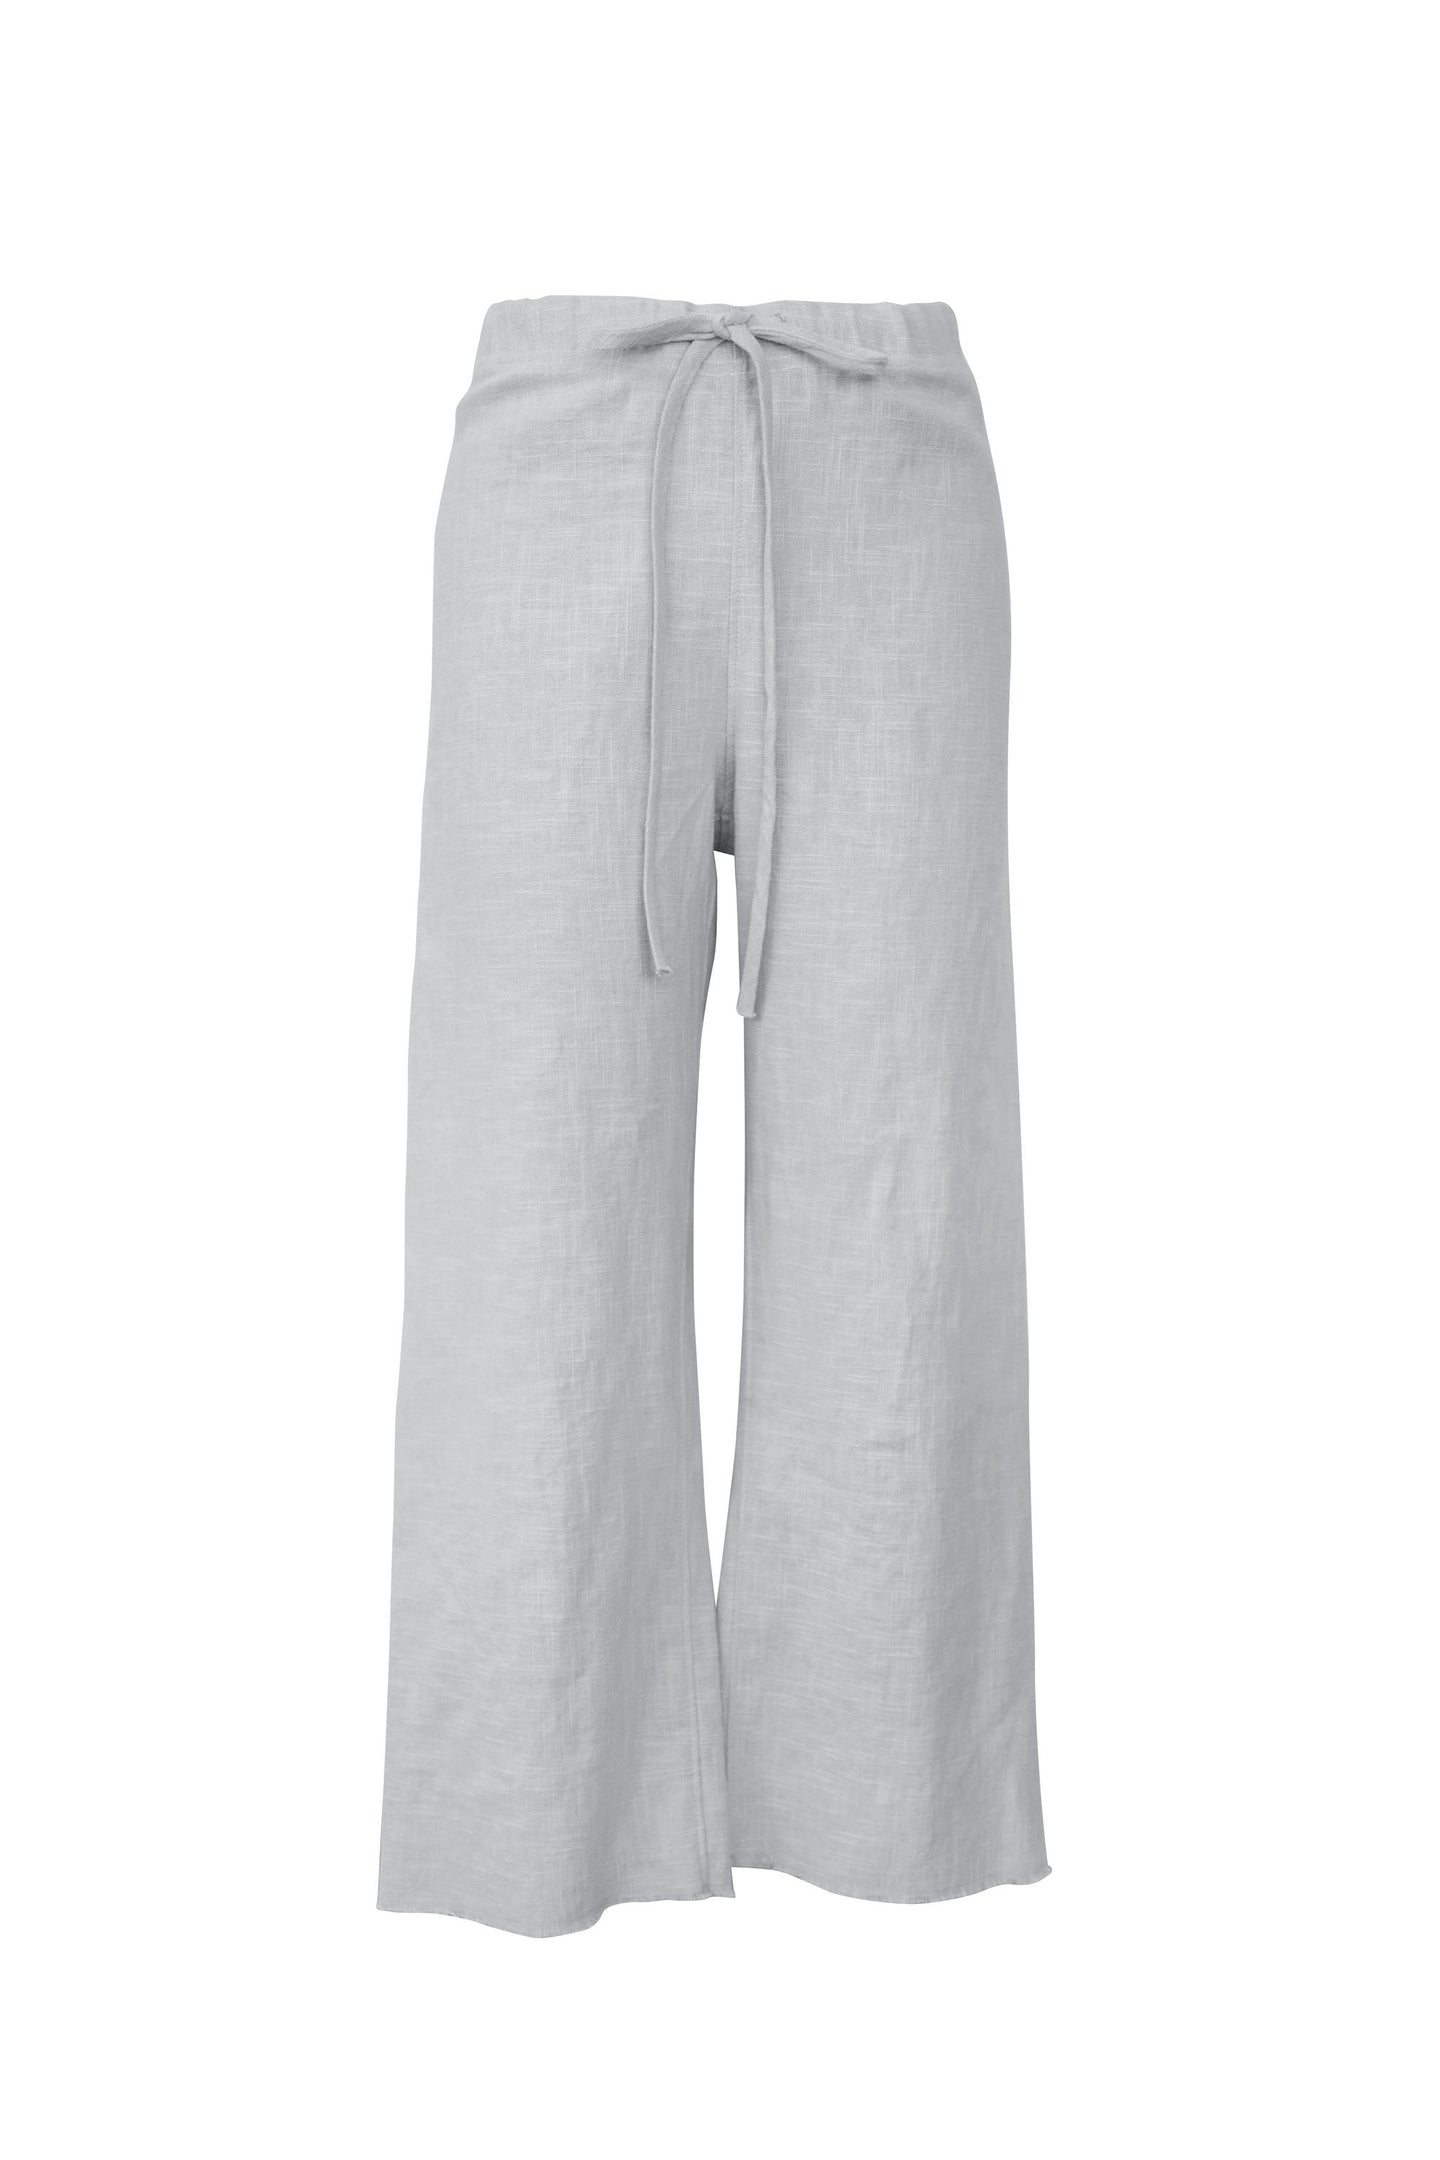 Silver Raw Edge Linen Pant